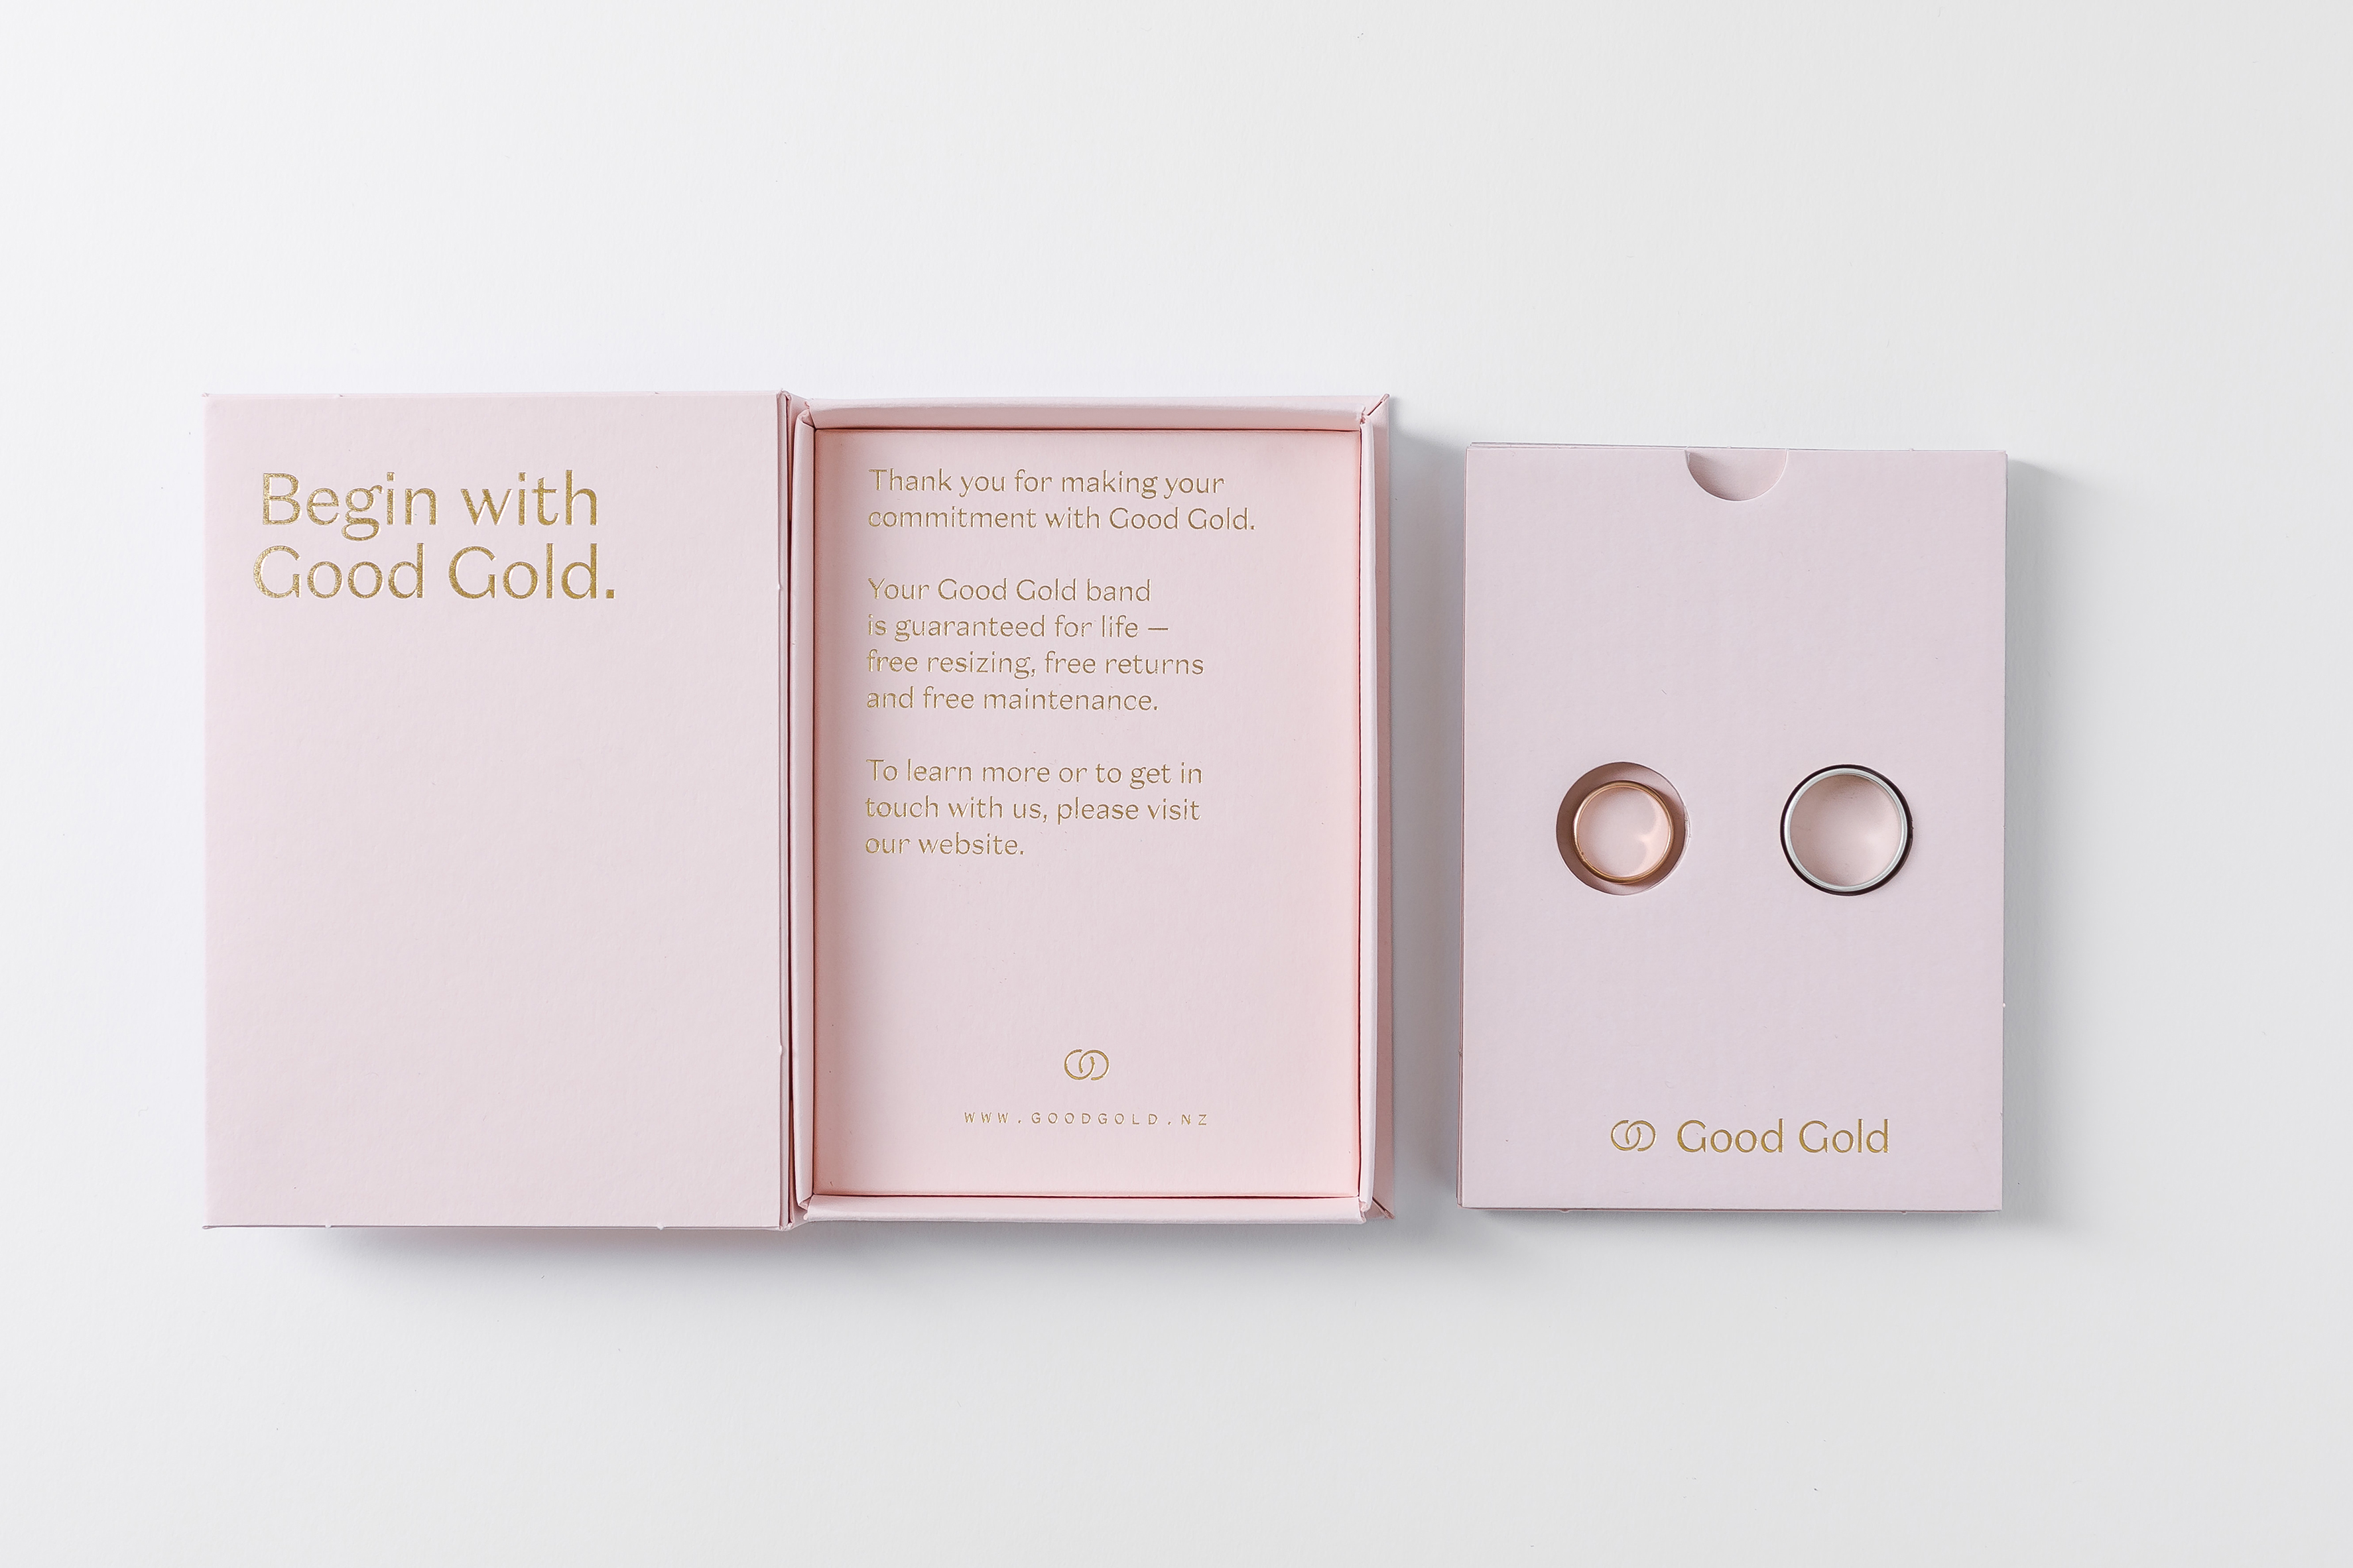 Good Gold Wanted to Make Something Beautiful, Meaningful and Environmentally Friendly